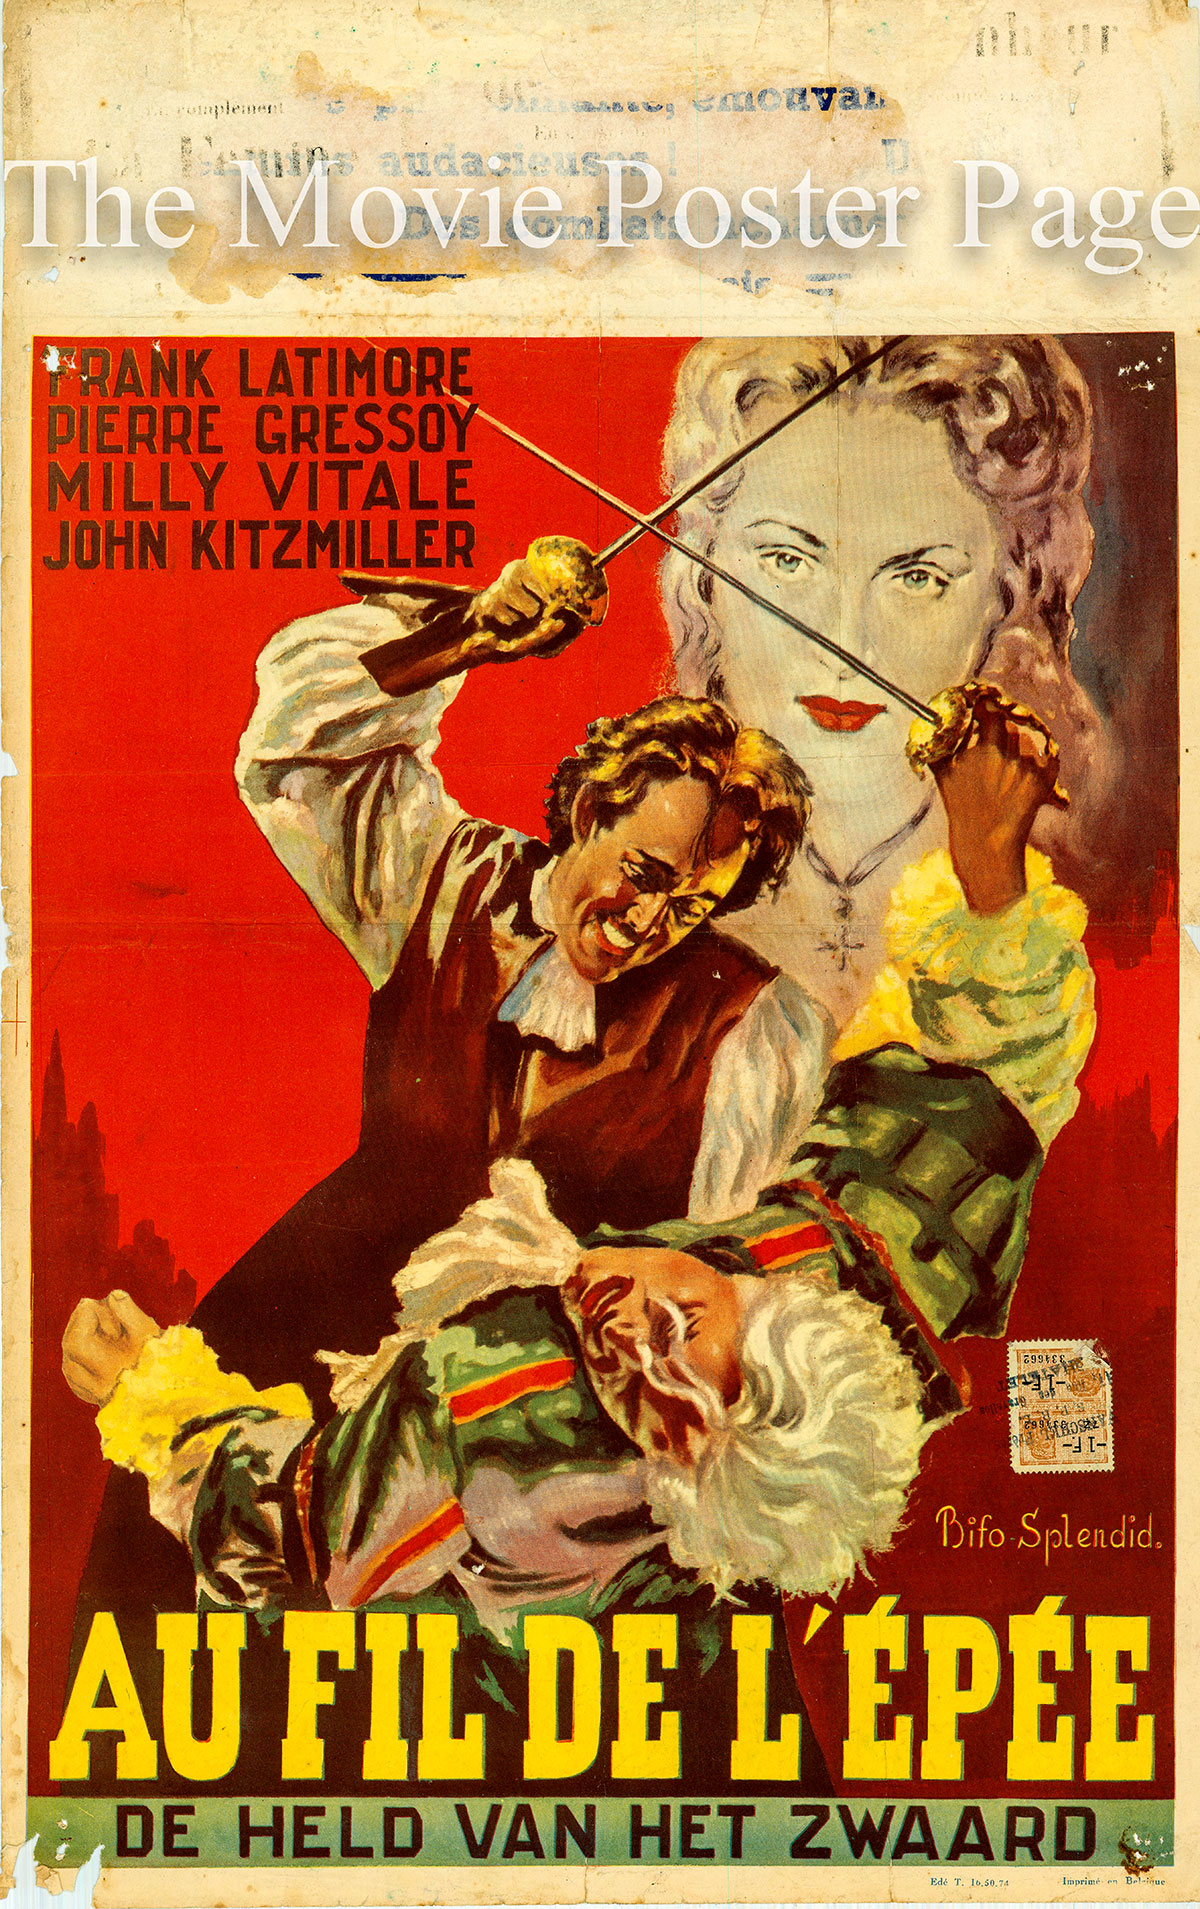 Pictured is a Belgian promotional poster for the 1952 Carlo Ludovico Bragaglia film At Sword's Edge starring Frank Latimore as Don Ruy.